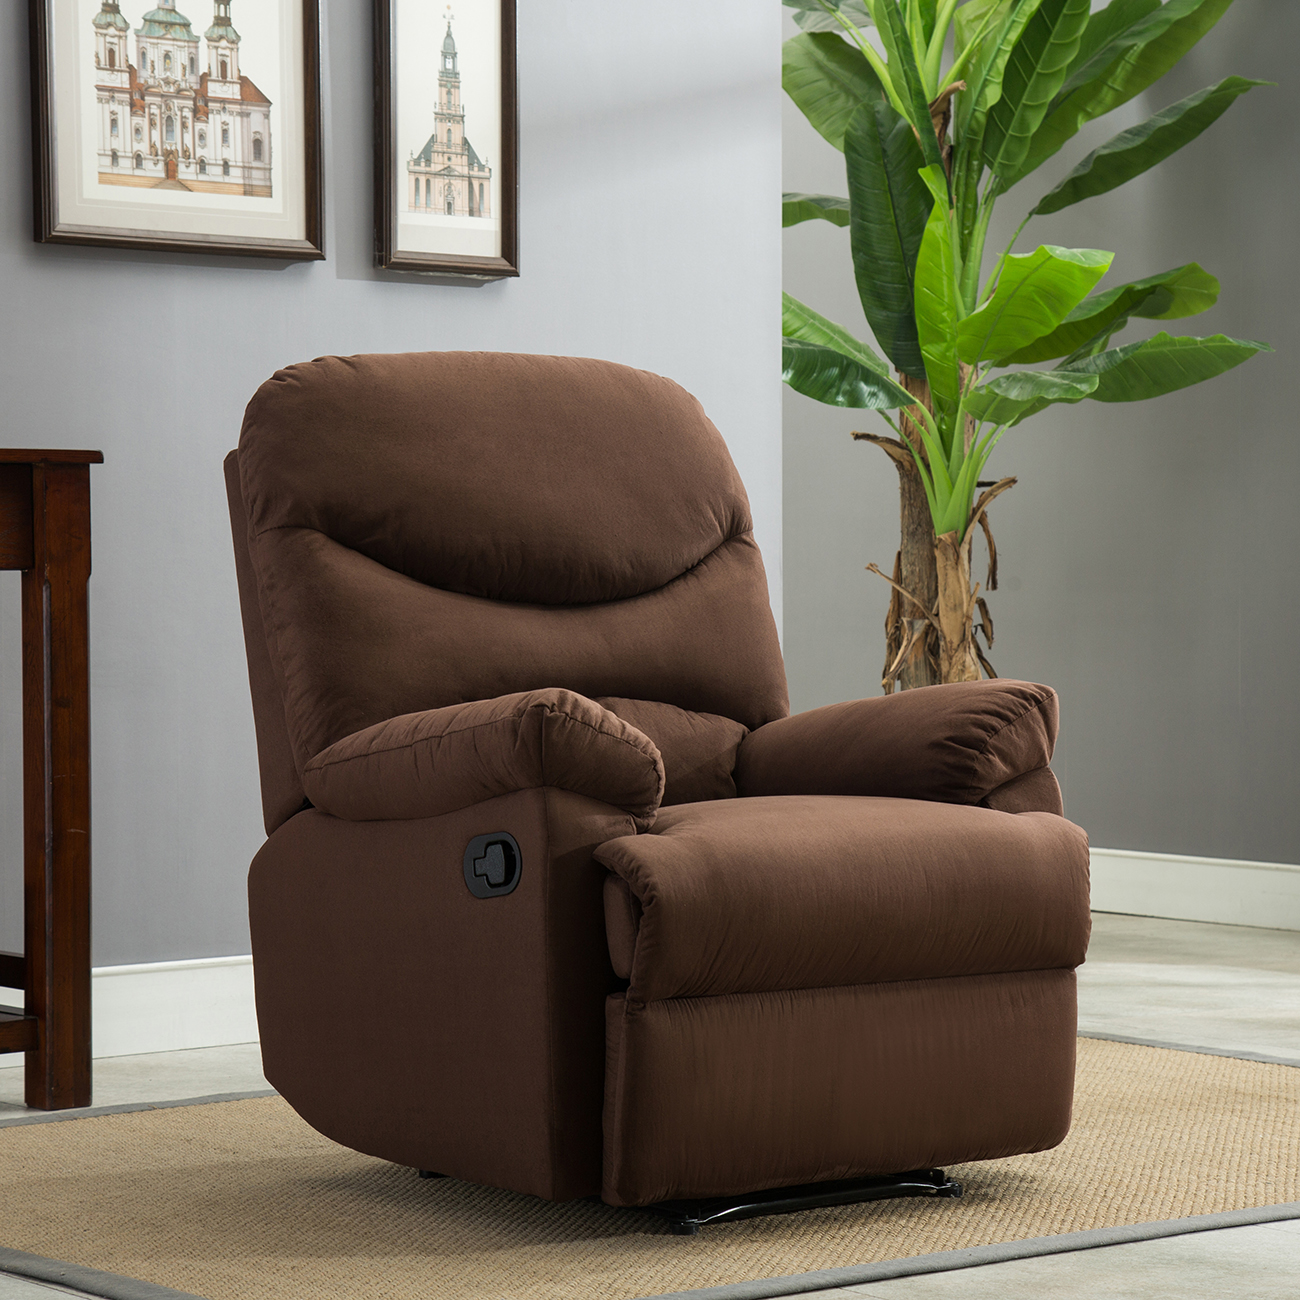 Recliner Chair Sofa Living Room Furniture Microfiber Reclining